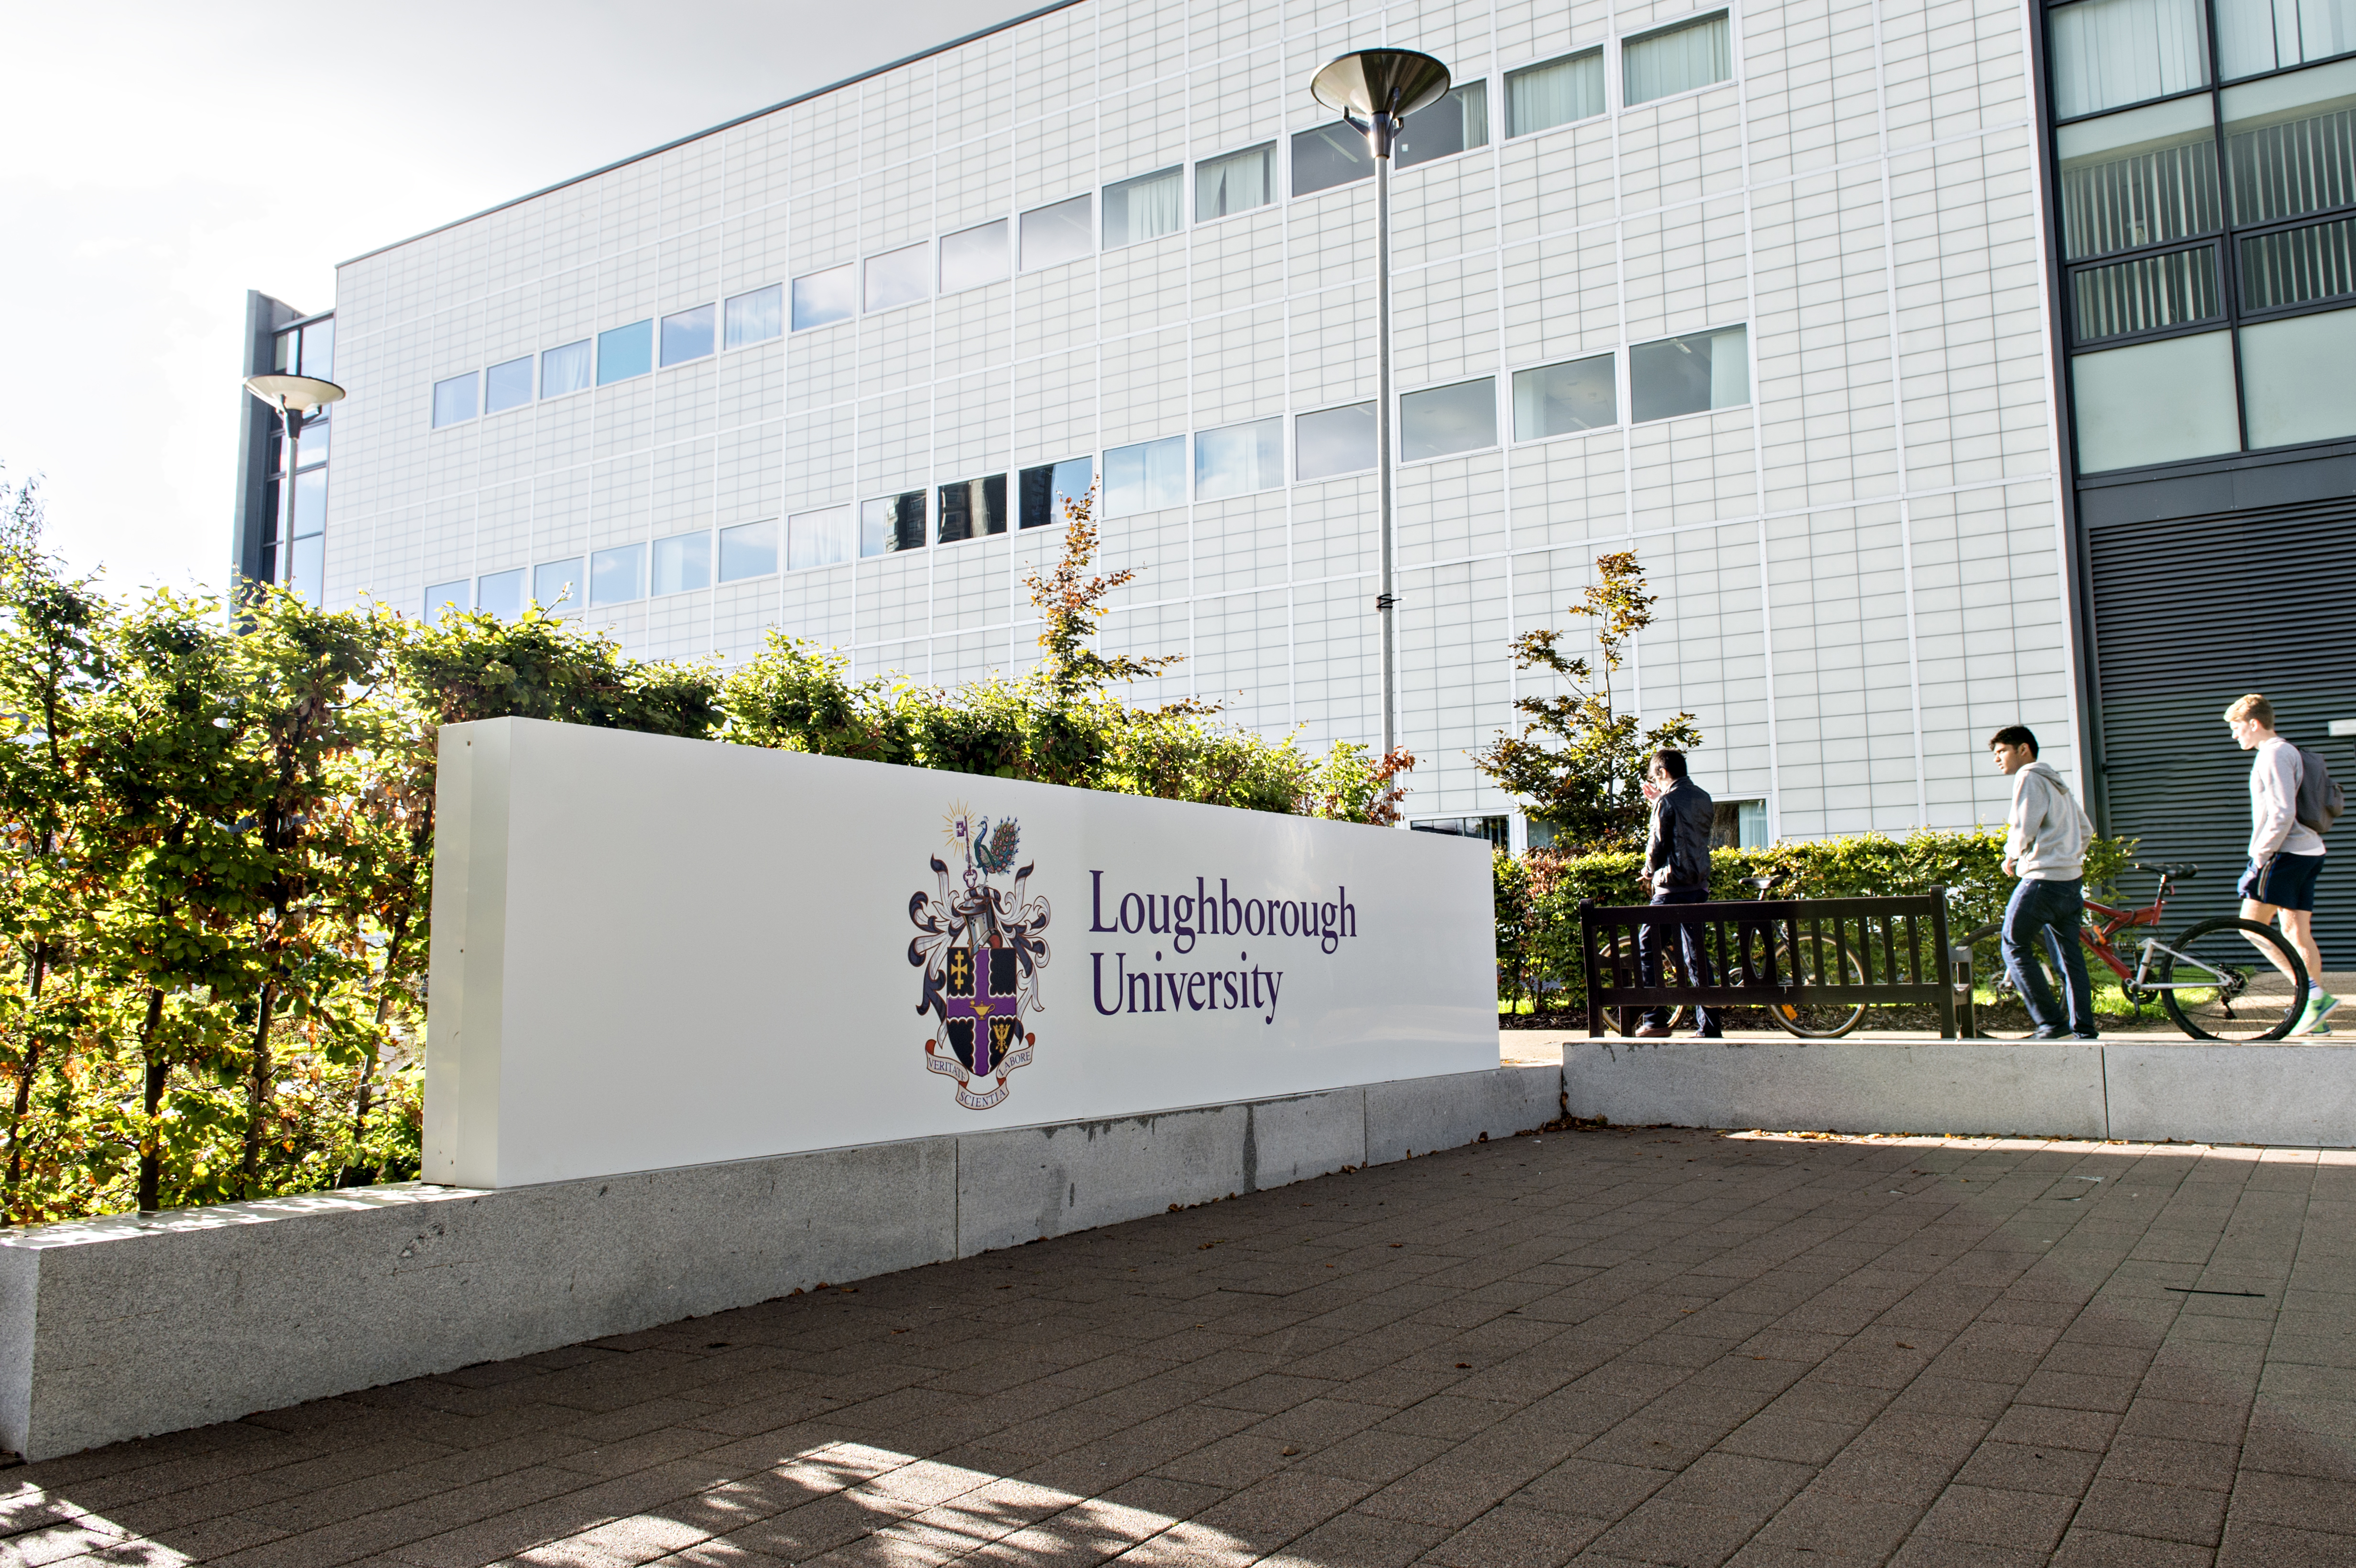 Loughborough University main entrance sign